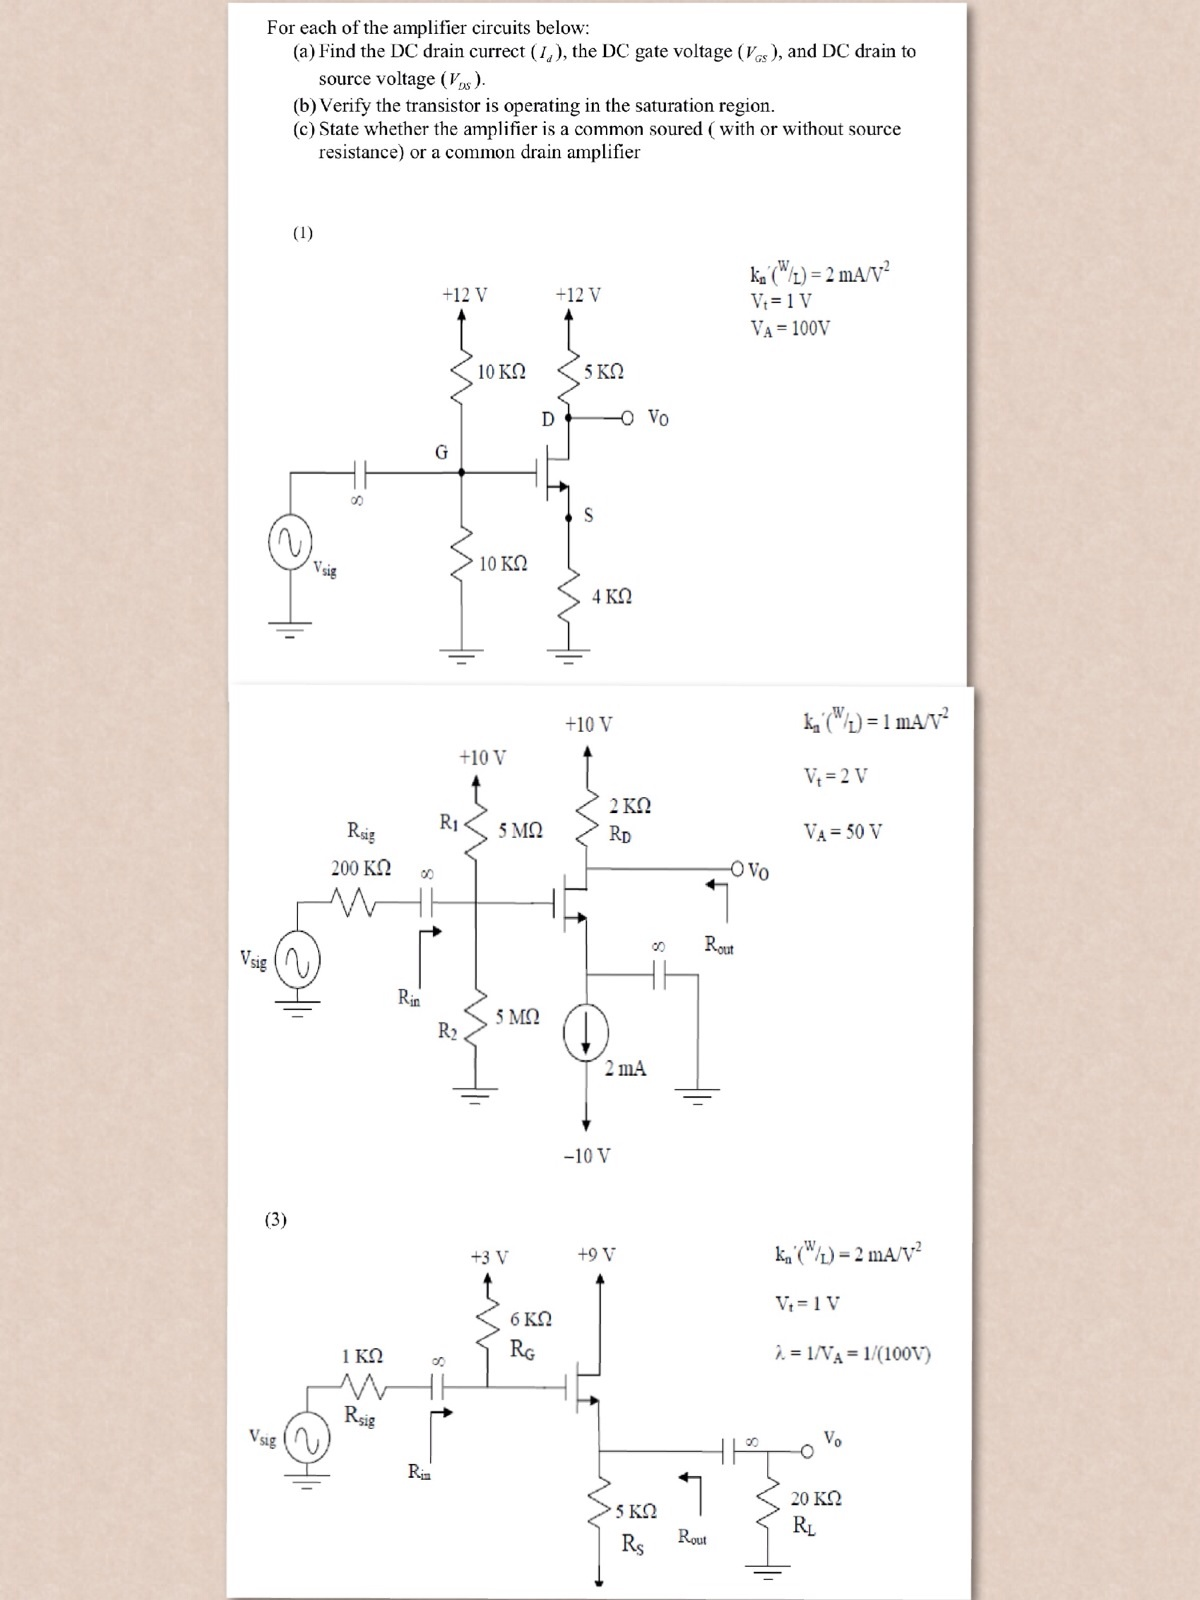 For each of the amplifier circuits below: Find the